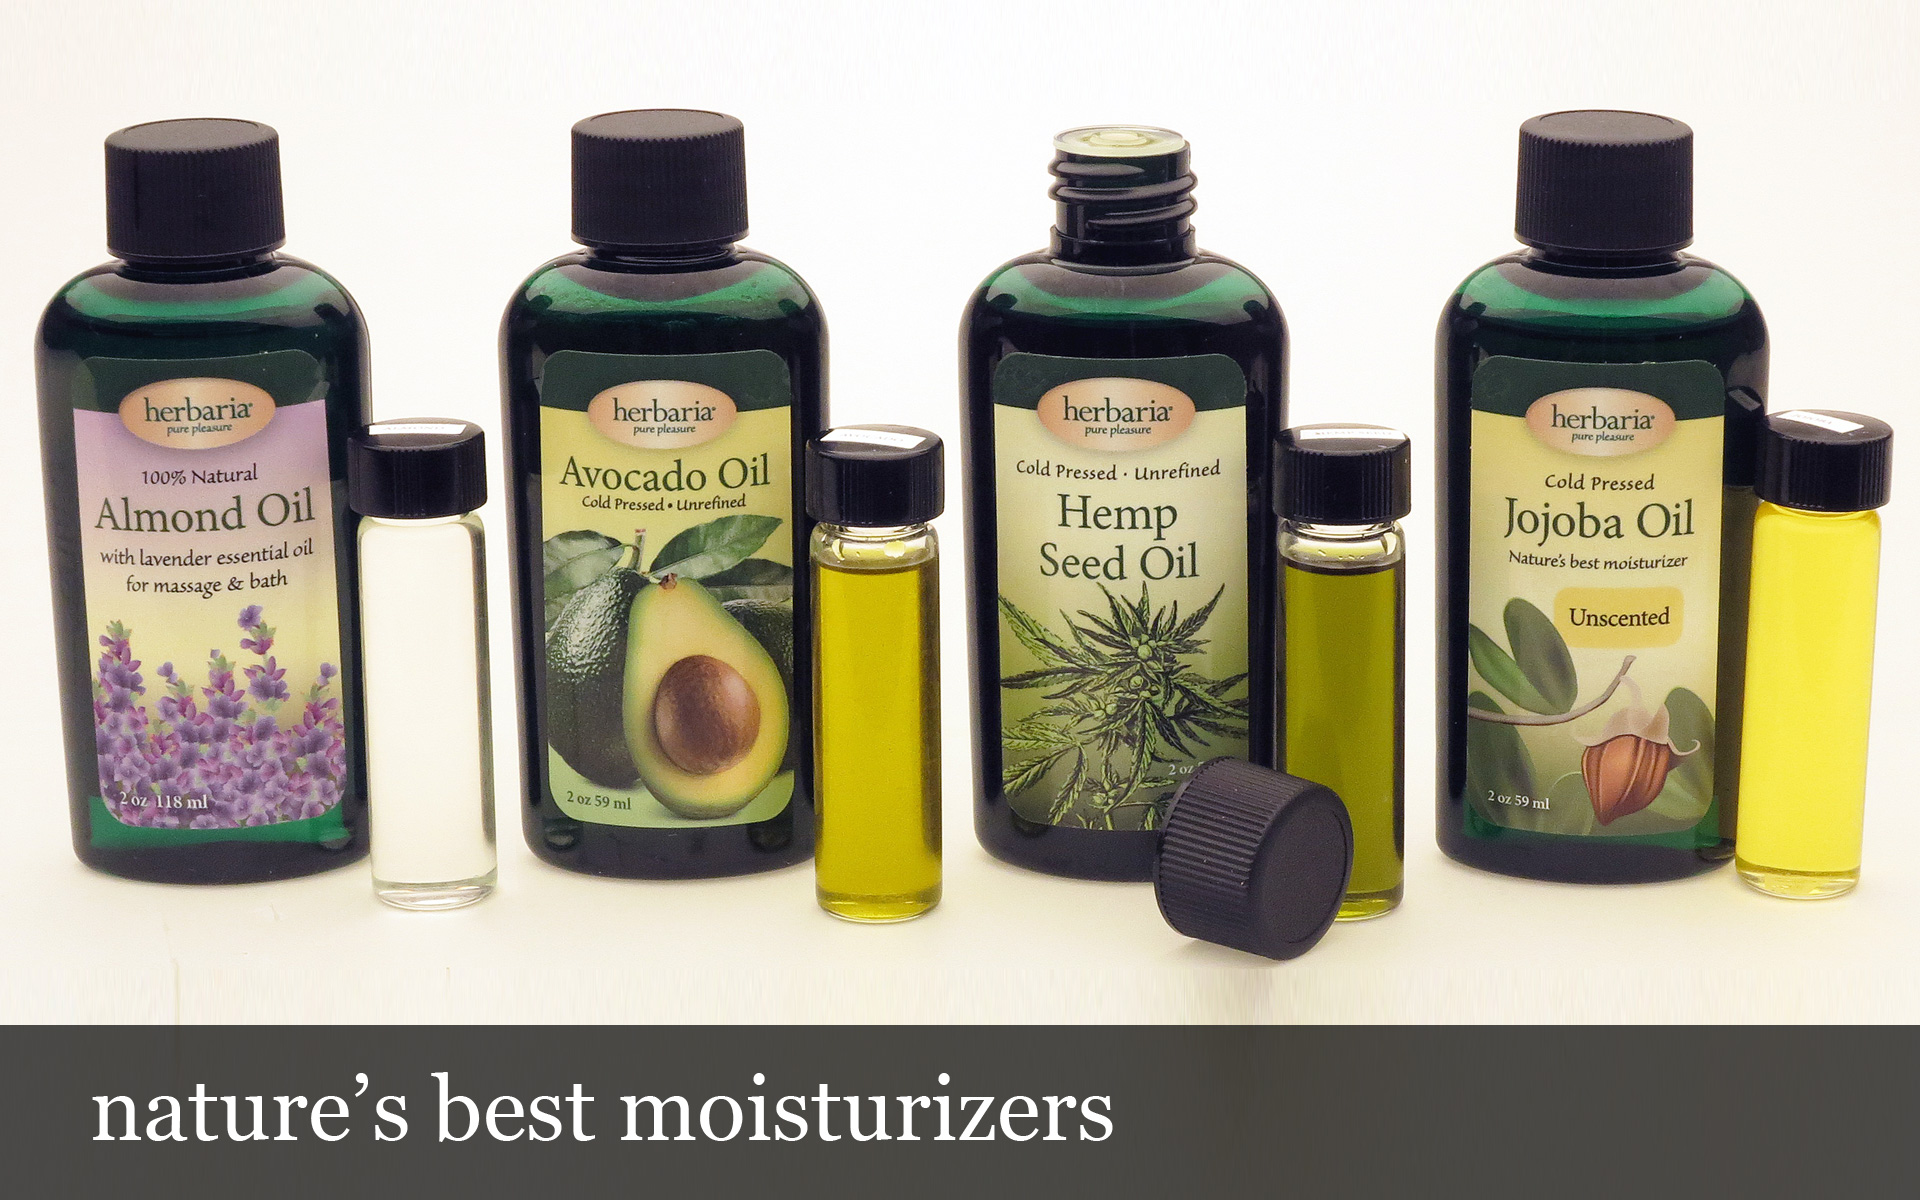 Nature's best moisturizers